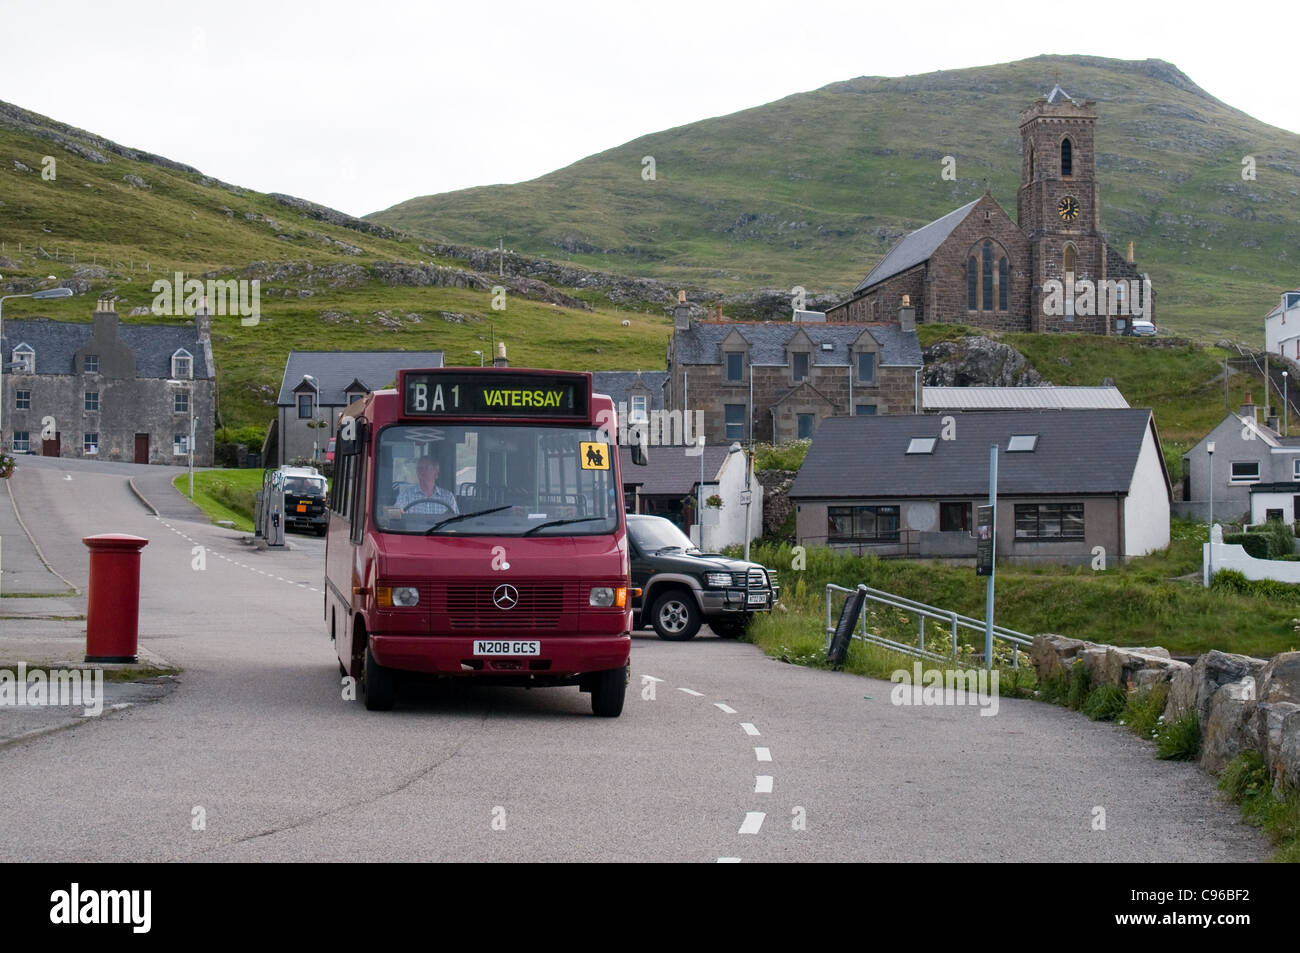 A minibus operated by R Macmillan passed through Castlebay on  the island of Barra heading to Vatersay. - Stock Image